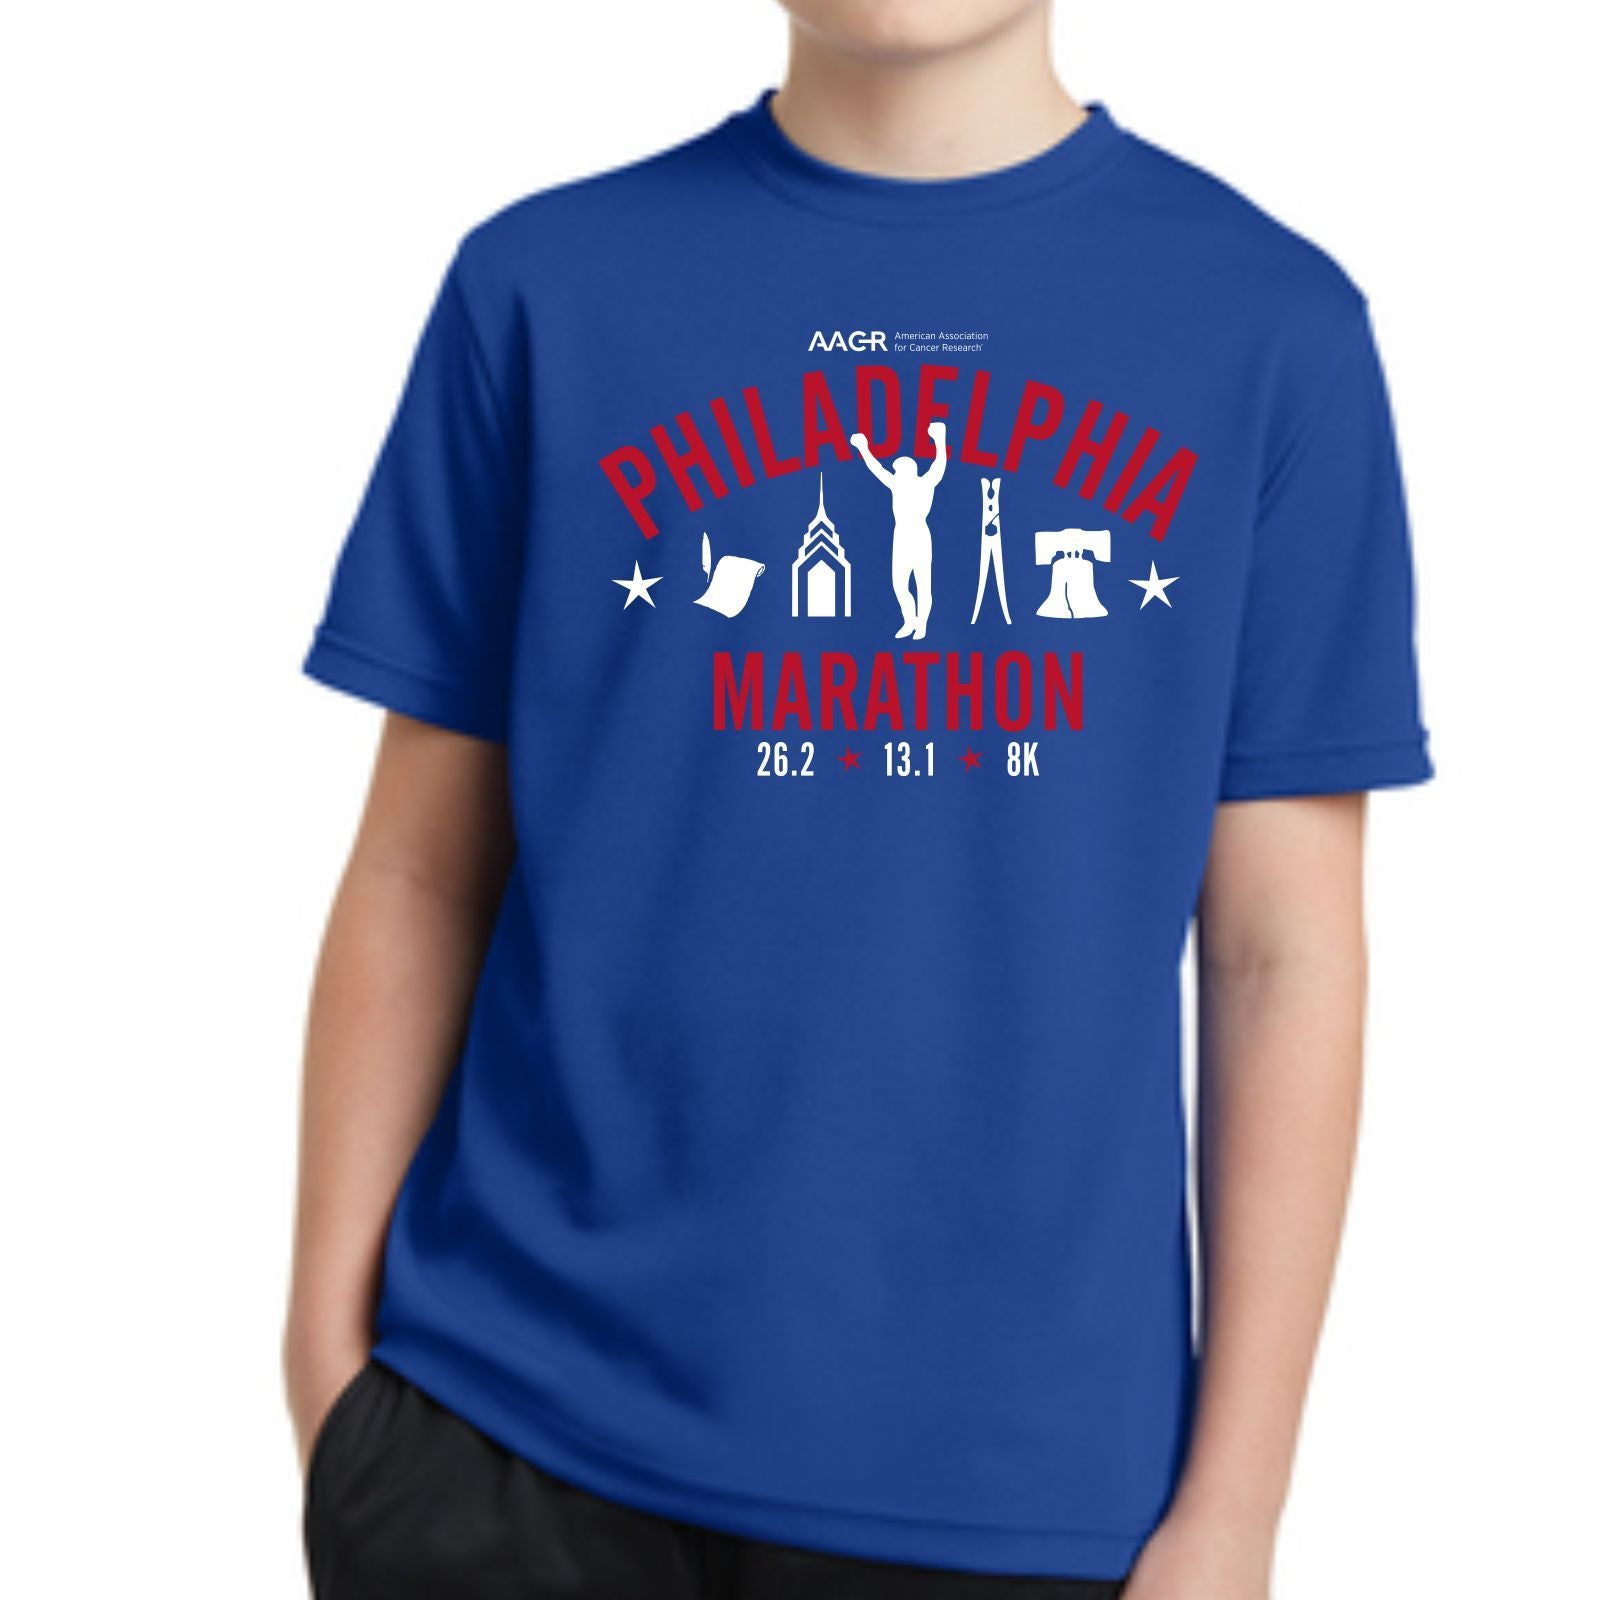 AACR Philadelphia Marathon Youth SS Tech Tee - True Royal